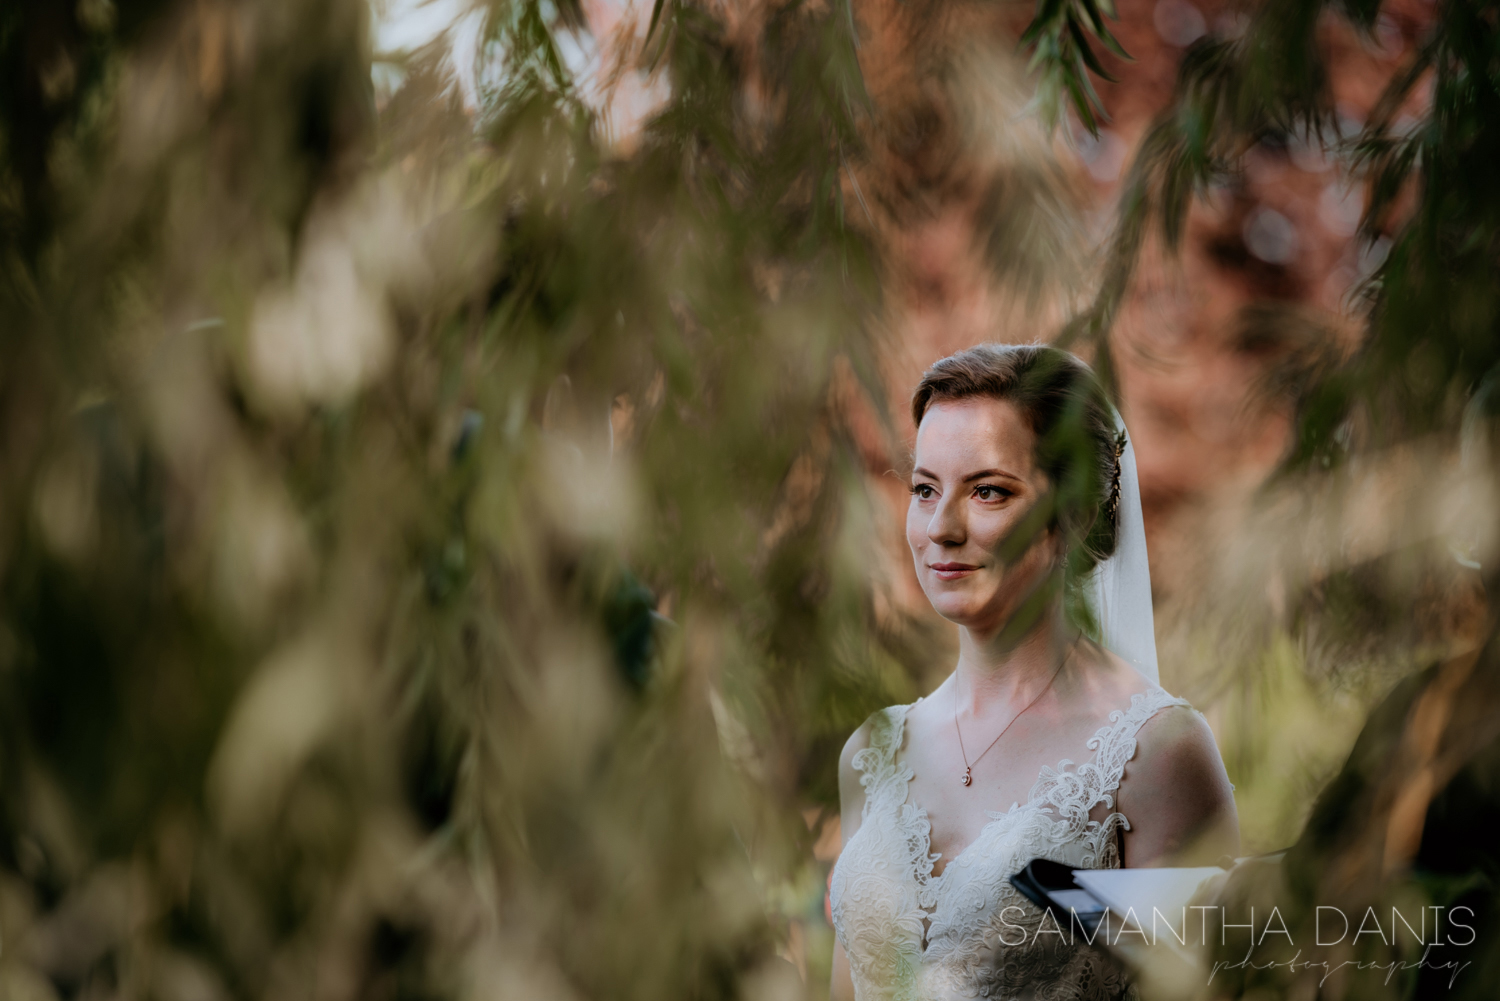 Photographed through the willow leaves and framing our Ottawa Brides face perfectly during their elopement ceremony.